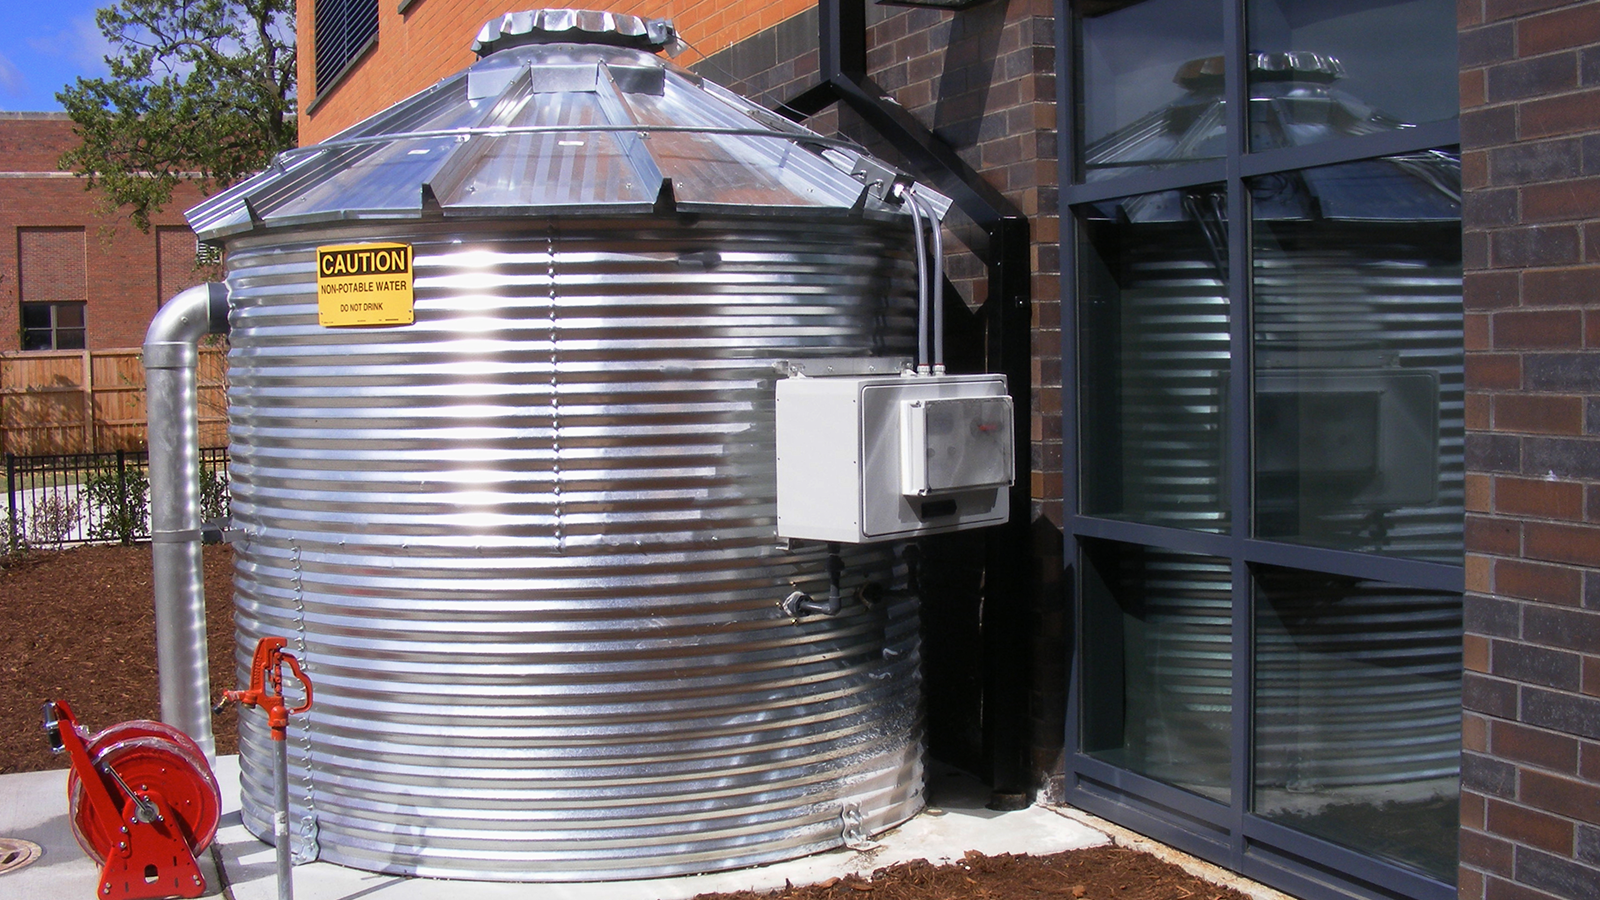 Fire Protection Water Tank Boone Clinton CorGal-0802 & Fire Protection Water Tank Boone Clinton CorGal-0802 u2013 Water Storage ...